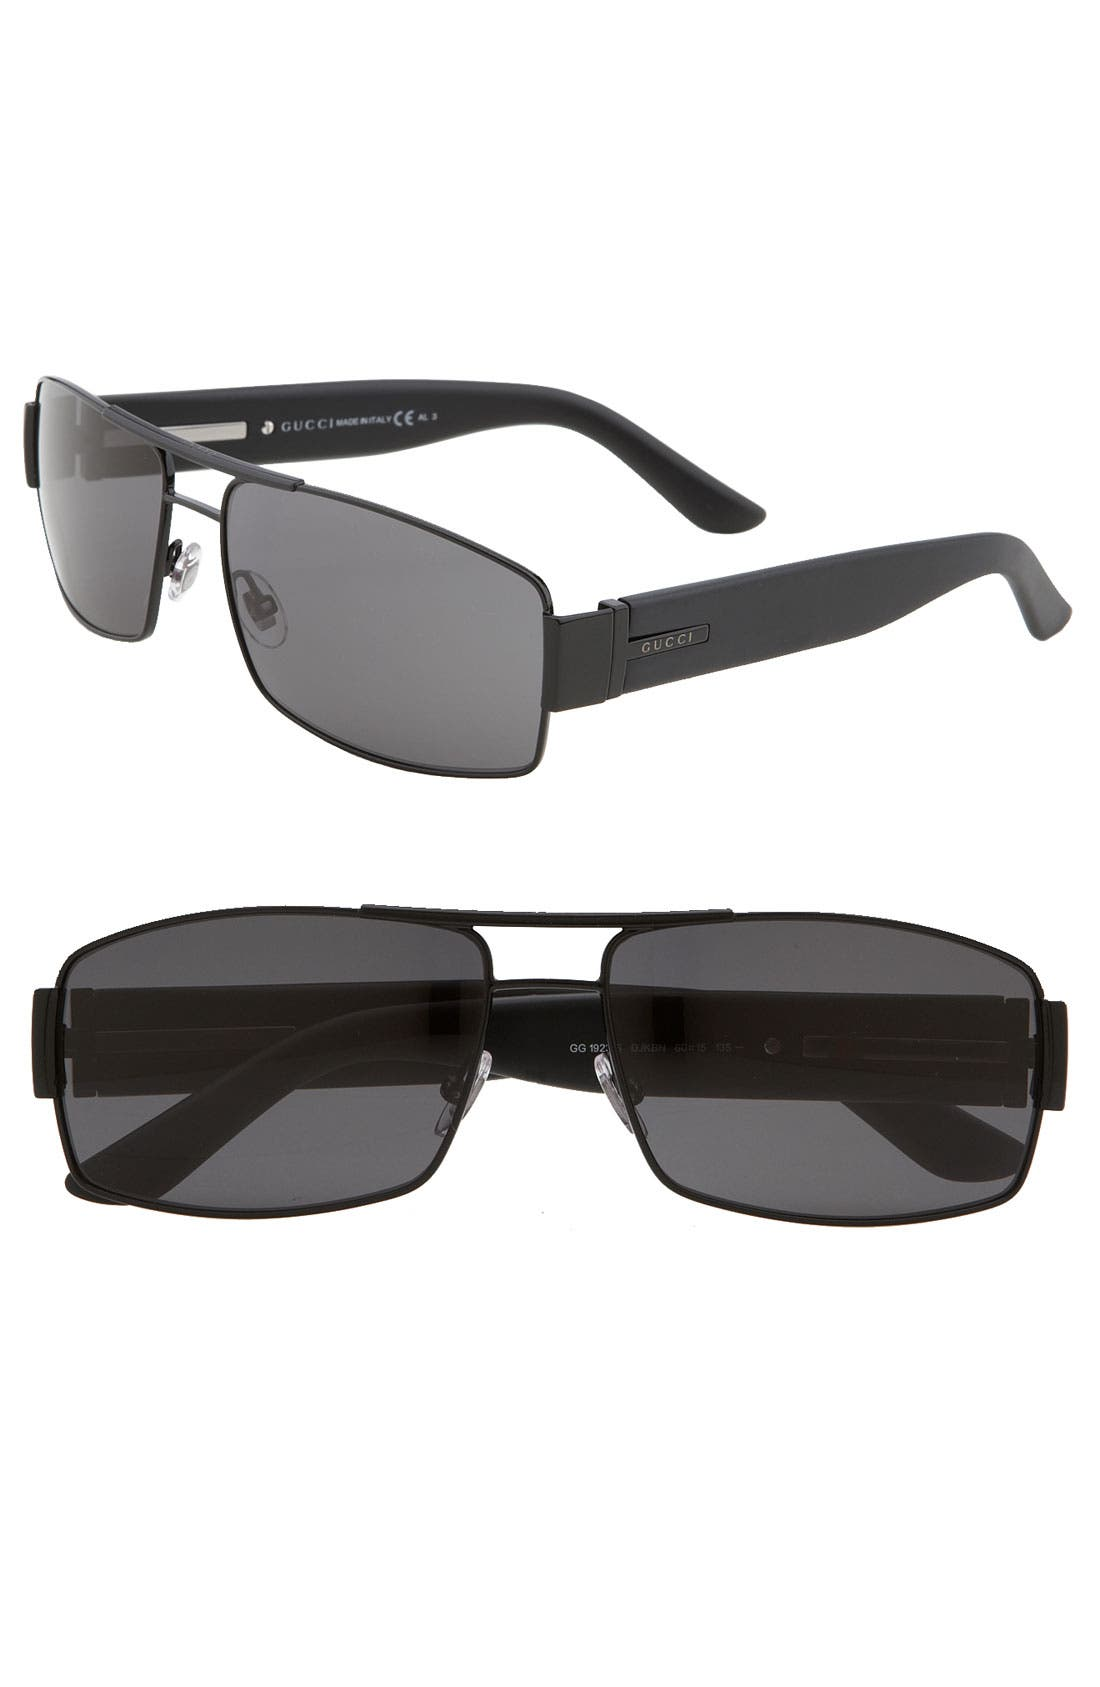 Alternate Image 1 Selected - Gucci 60mm Stainless Steel Sunglasses